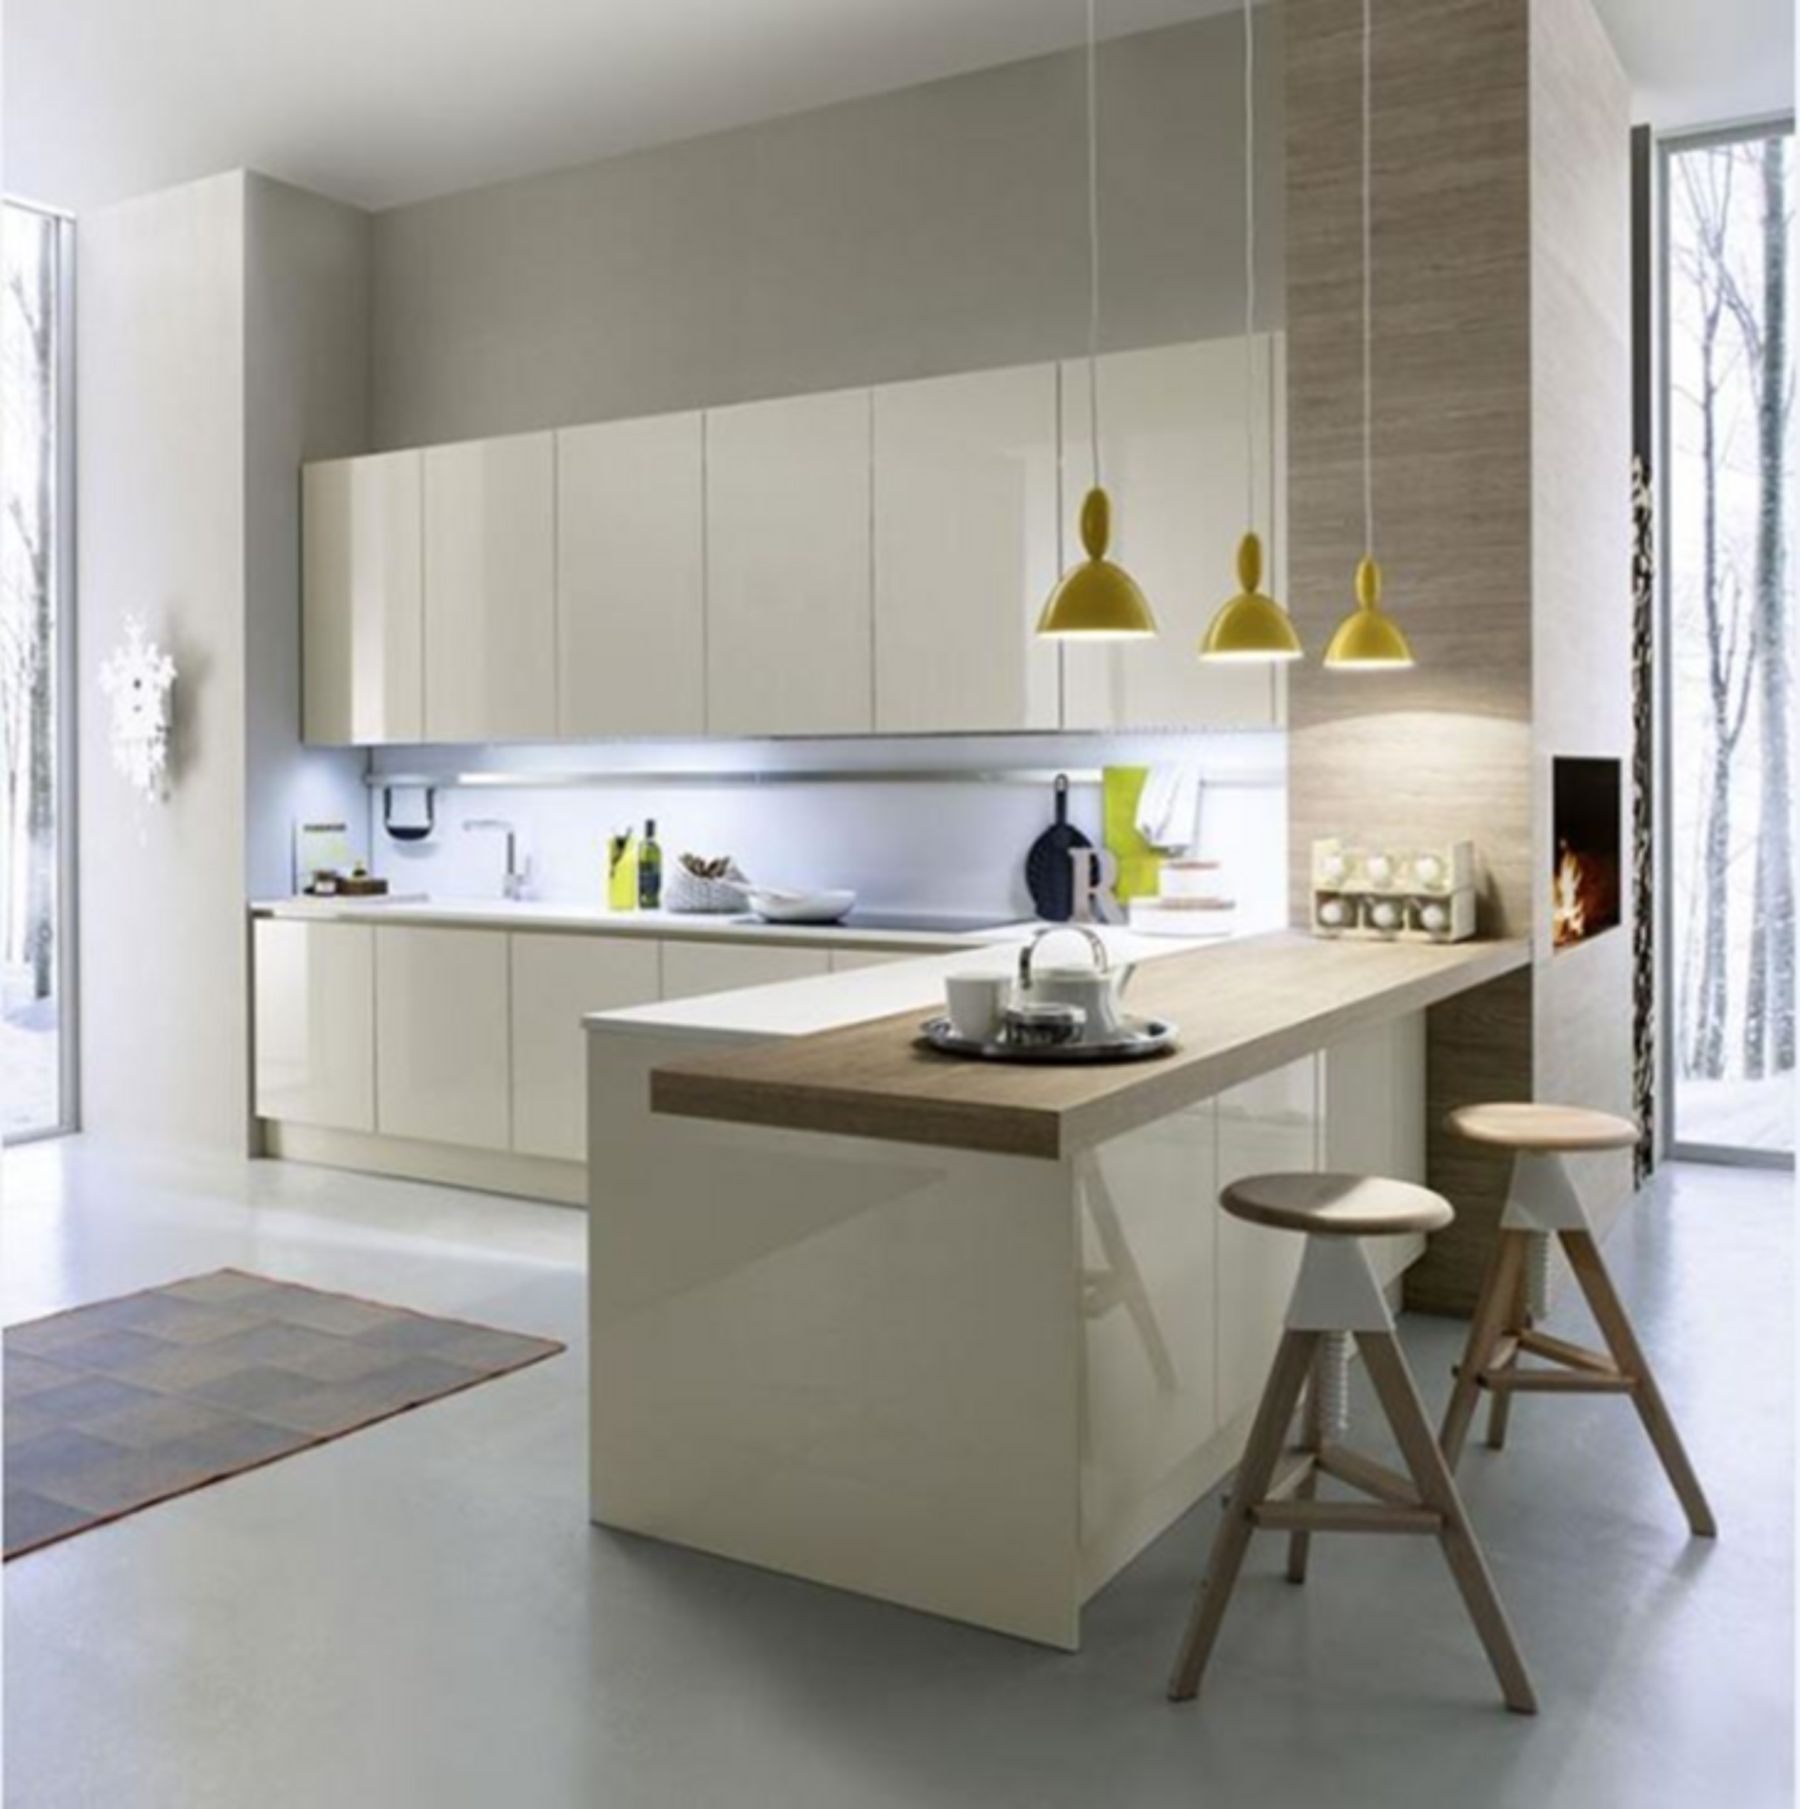 Interesting 10+ Minimalist Kitchen Set Design Ideas For